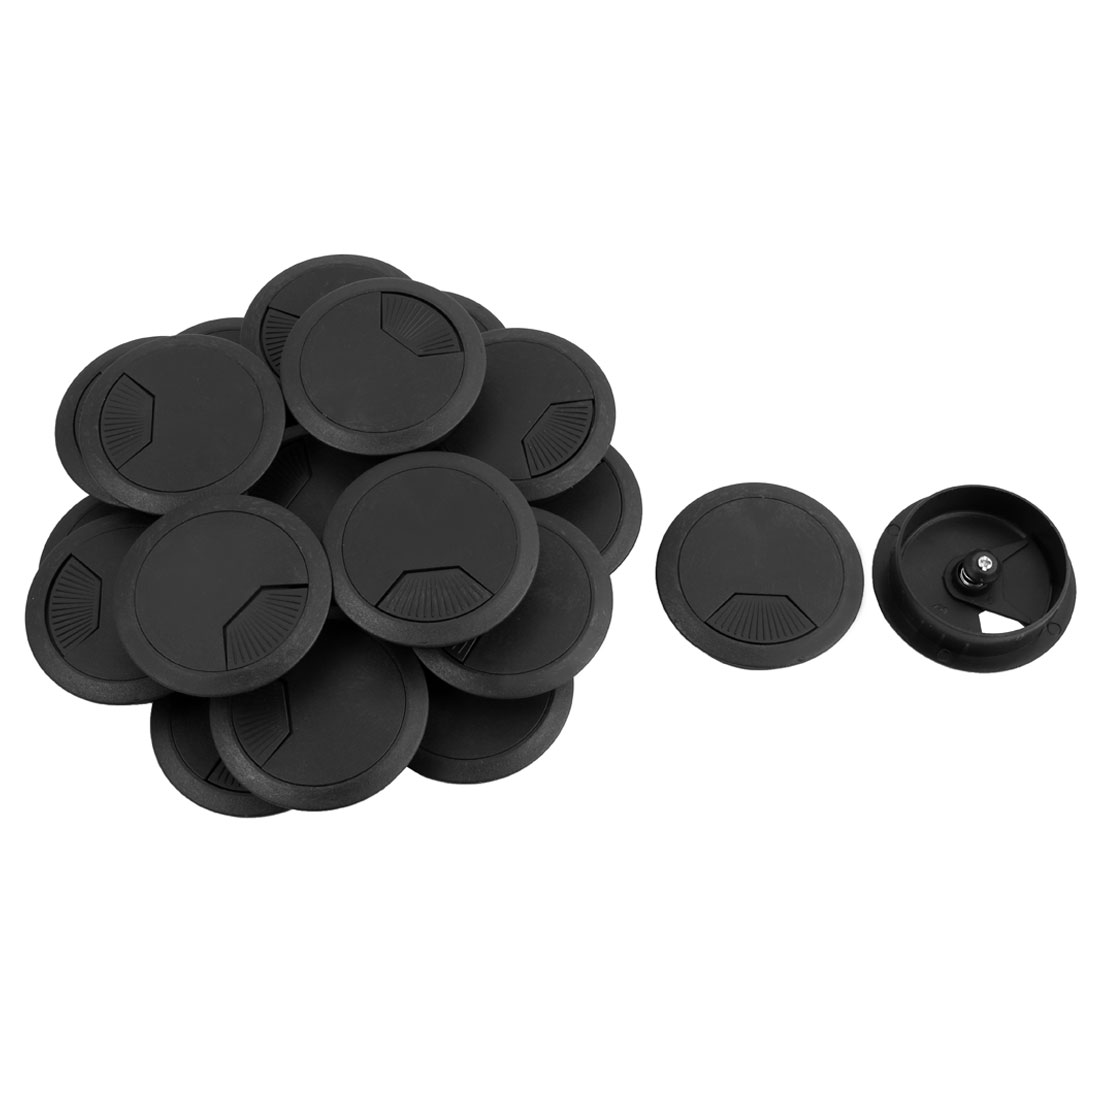 PC Computer Desk Table Round Grommet Tidy Cable Wire Hole Cover Black 50mm Dia 20 PCS